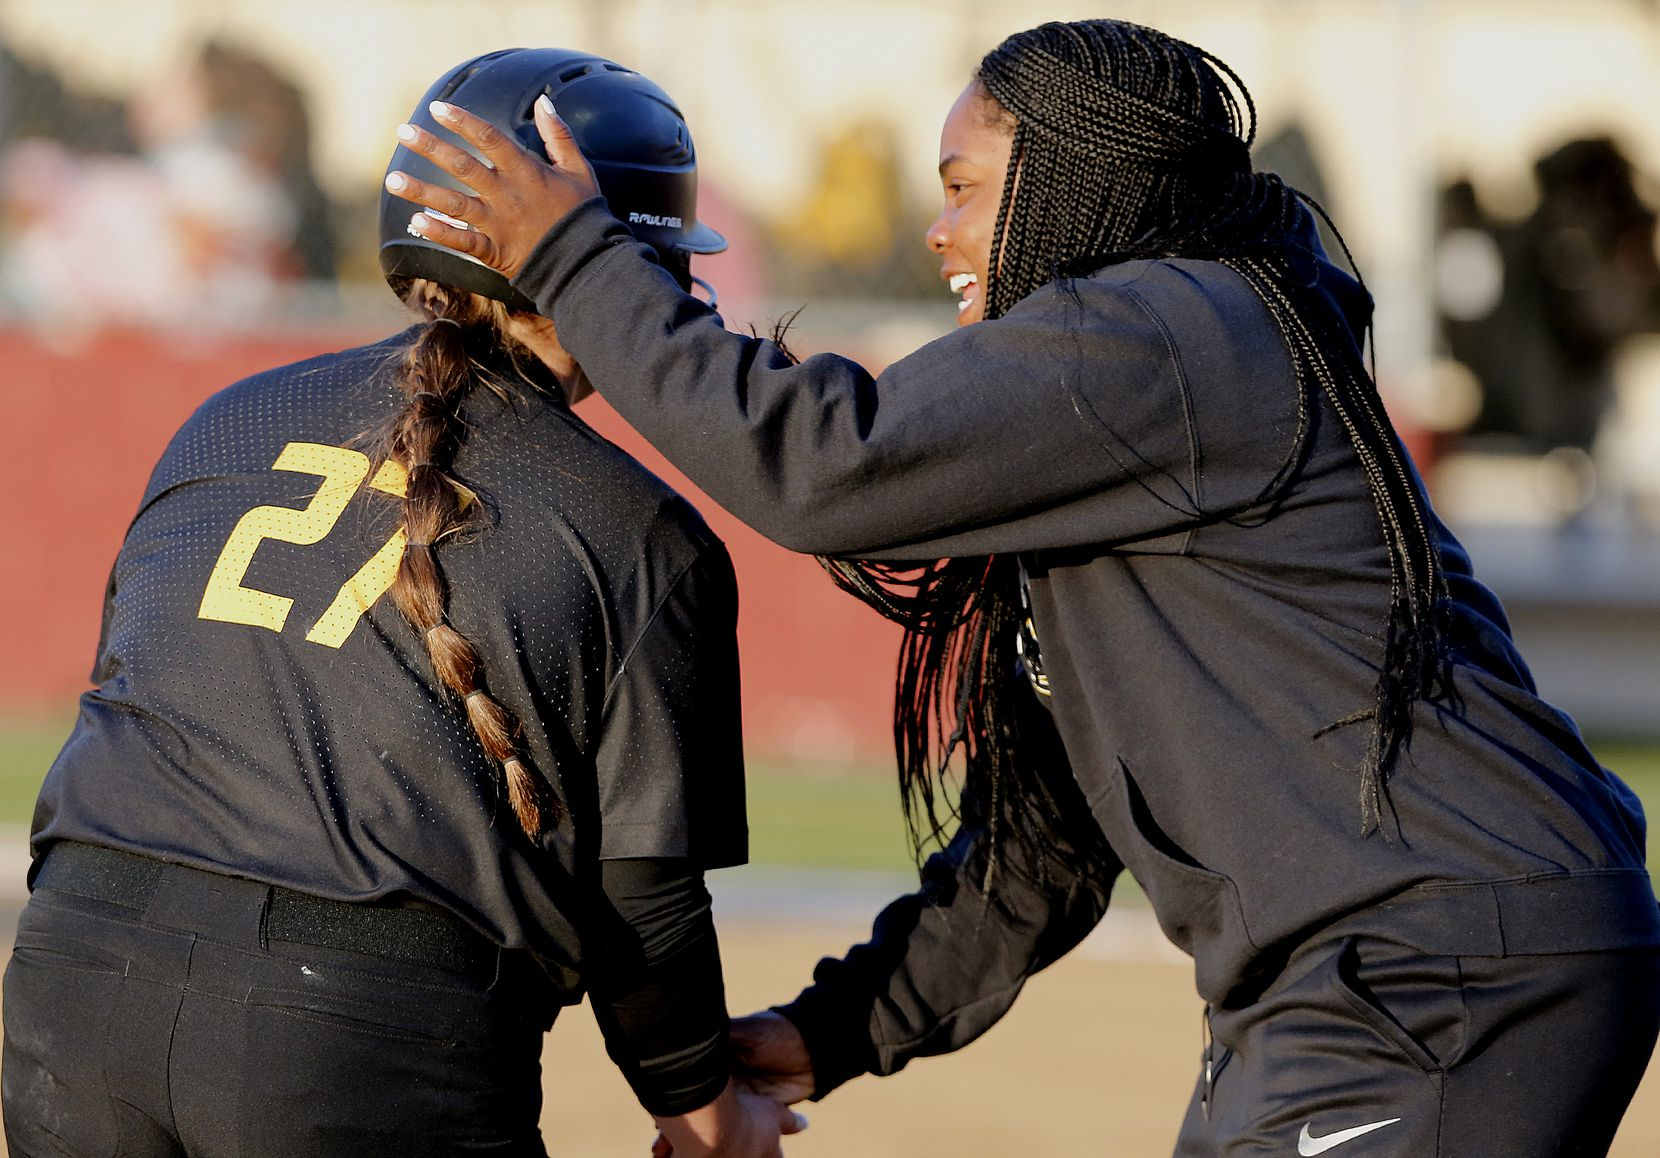 Memorial head coach Porscha Albert congratulates first baseman Peyton Chianese (27) after she hit an over-the-fence home run in the first inning as Heritage High School hosted Memorial High School for the District 9-5A softball championship in Frisco on Tuesday, April 20, 2021. (Stewart F. House/Special Contributor)